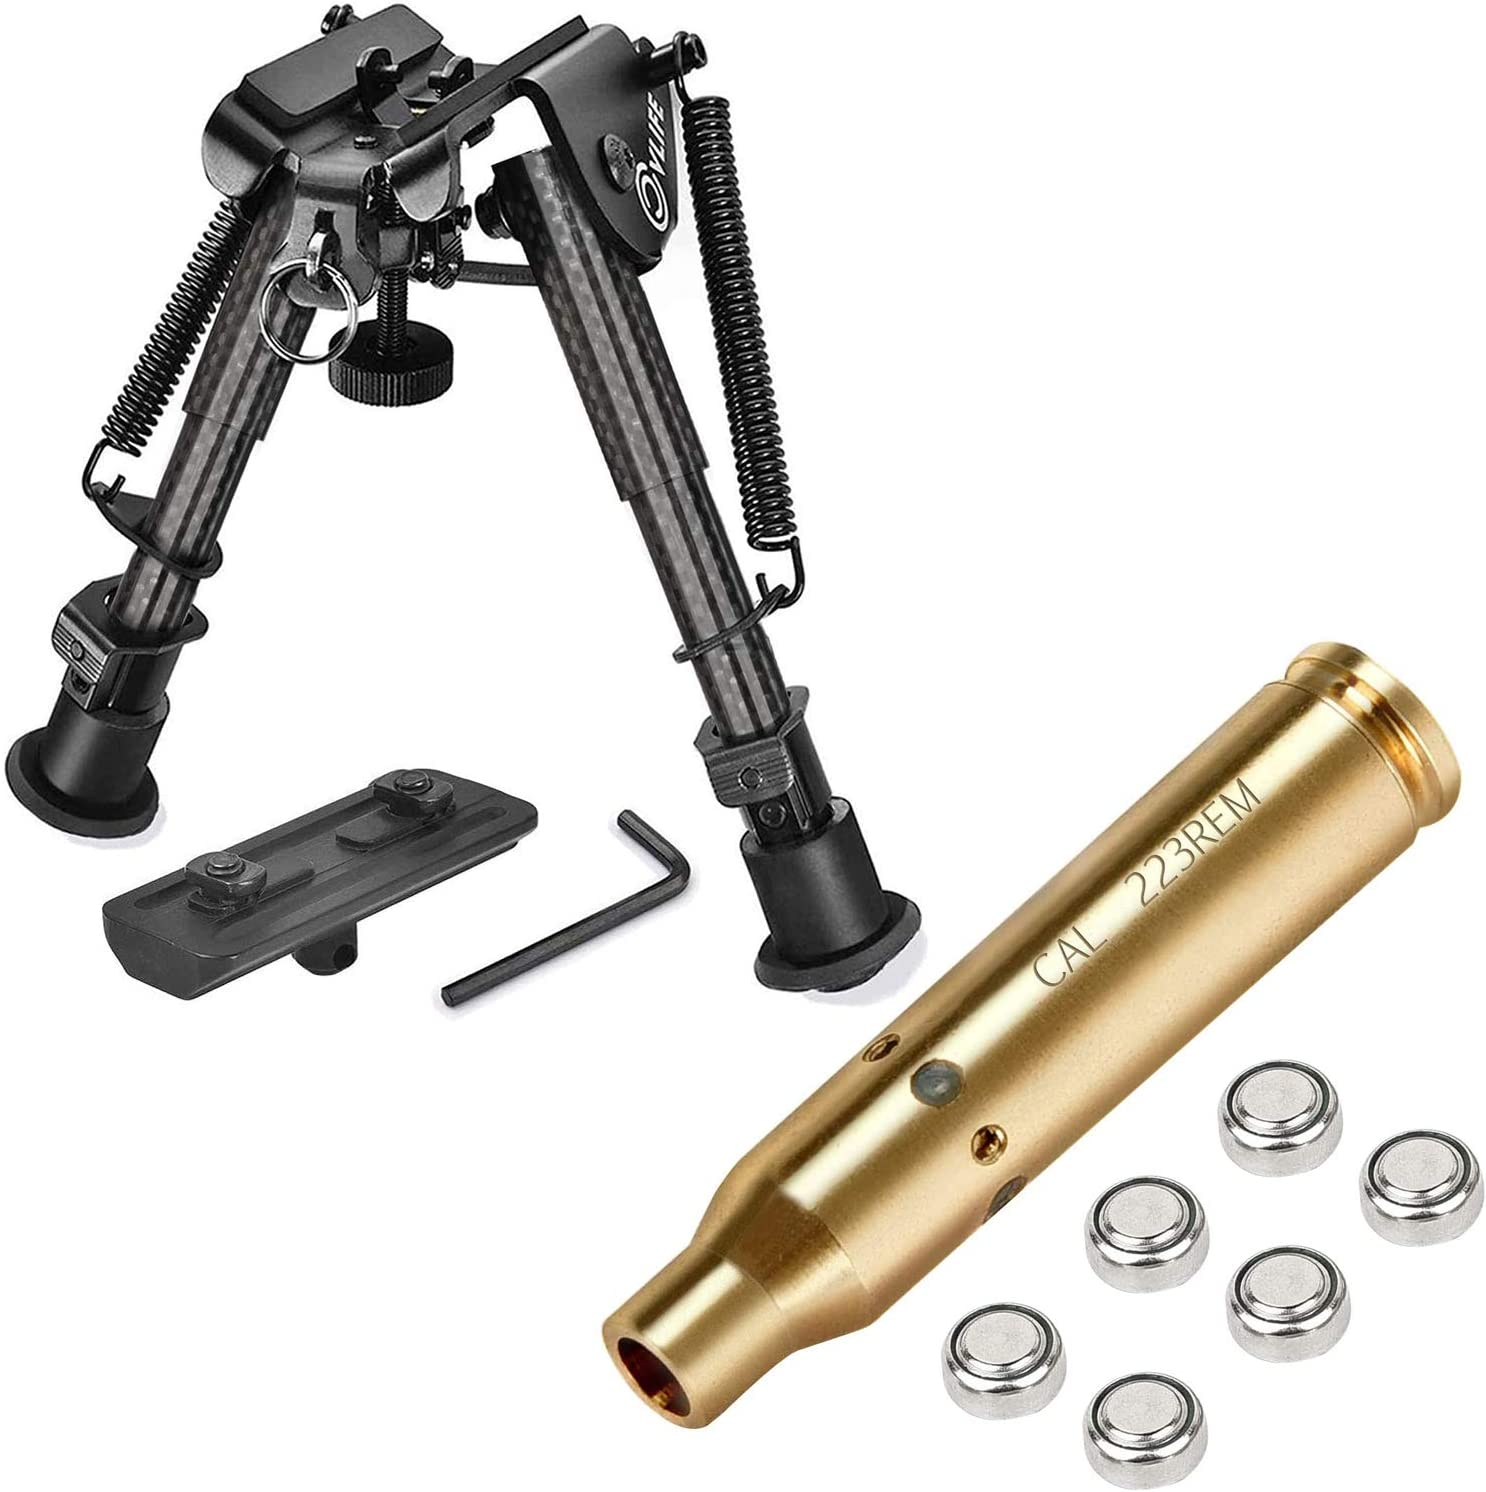 CVLIFE 6-9 Carbon Fiber Bipod with Bore Sight Cal 223 5.56mm Rem Gauge Red Dot Boresighter with Two Sets Batteries